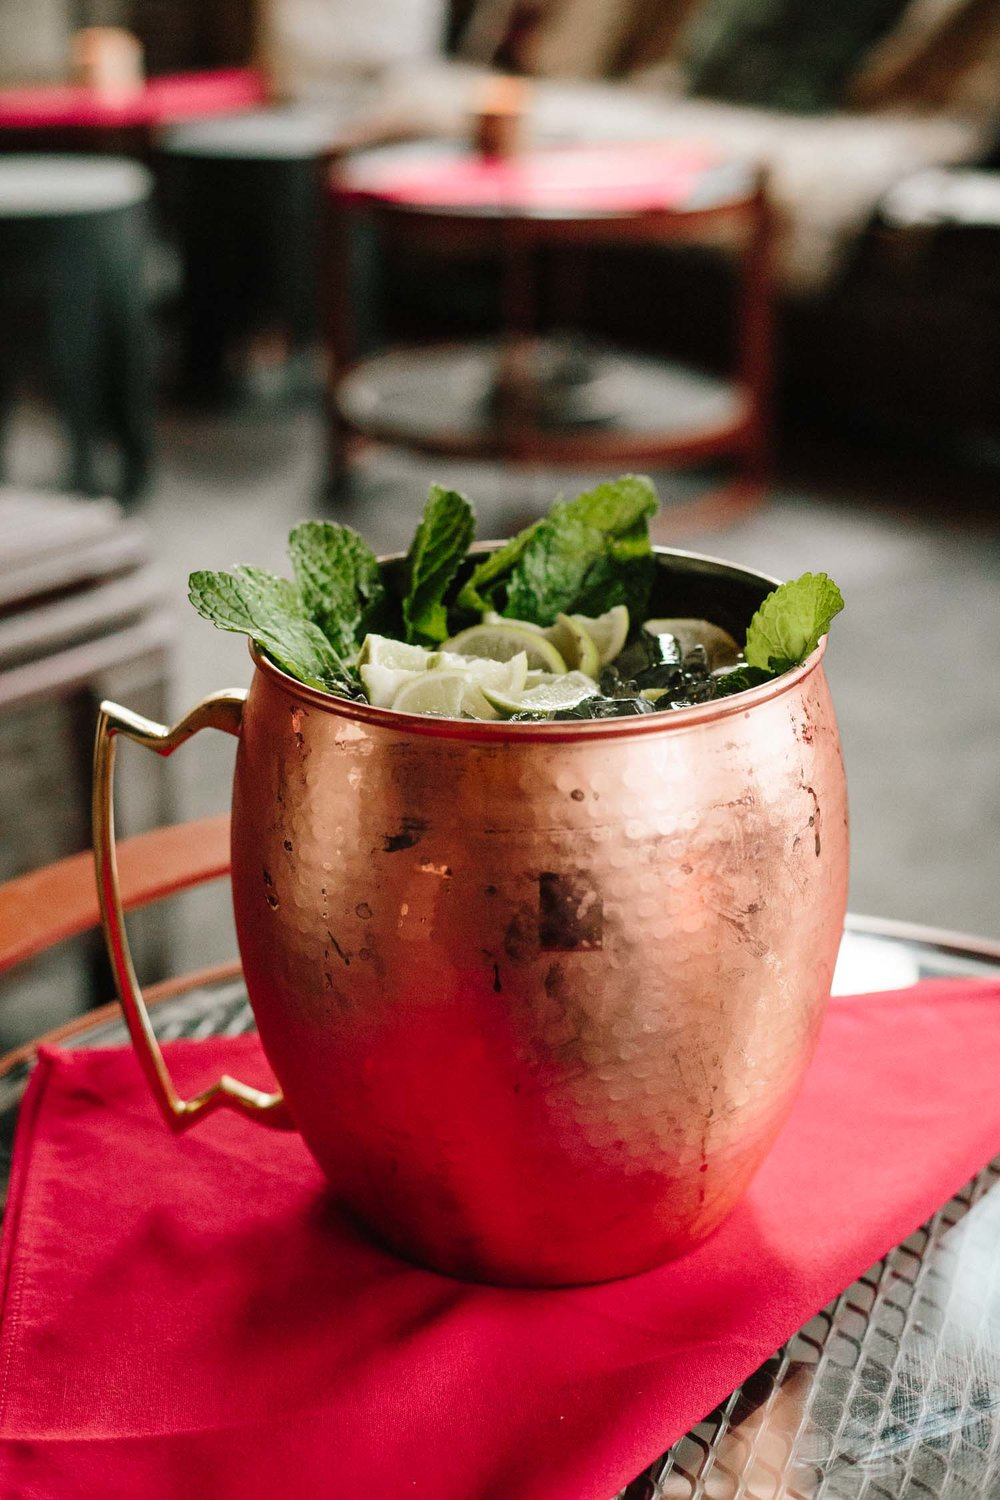 PHD Terrace introduced Sam and I to the Mega Mule. 10 lbs and SO delicious. Meant for 8-10 people.